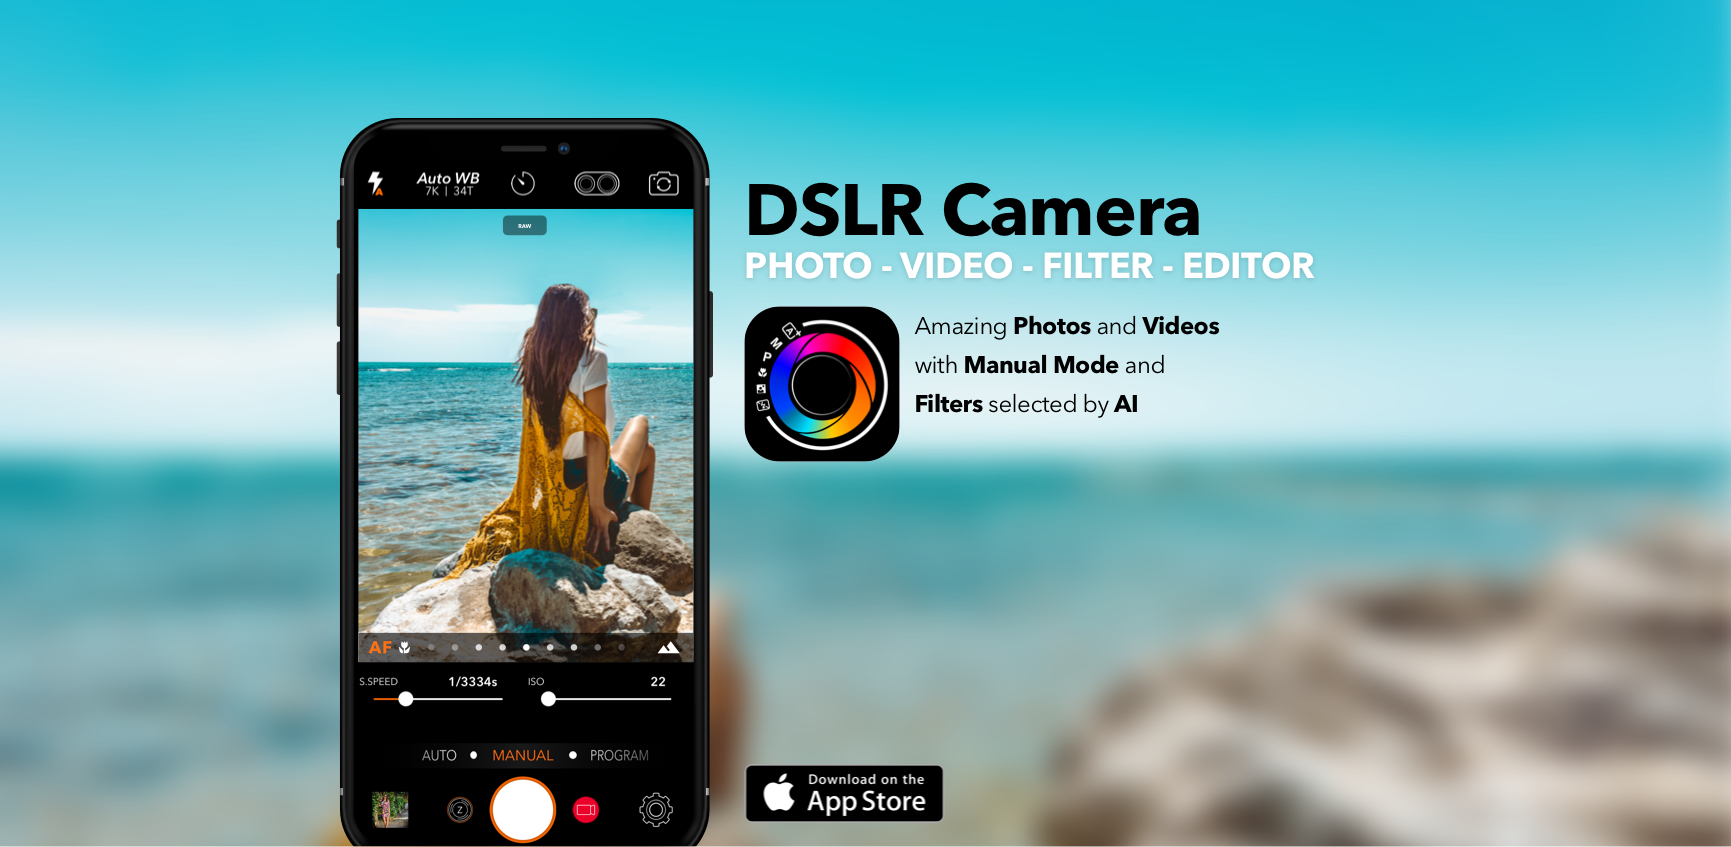 DSLR Camera for iPhone, iPad, Apple Watch and iMessage the complete app for  Photo and Video with Manual Controls, Advanced Editor and 146 Professional  ...